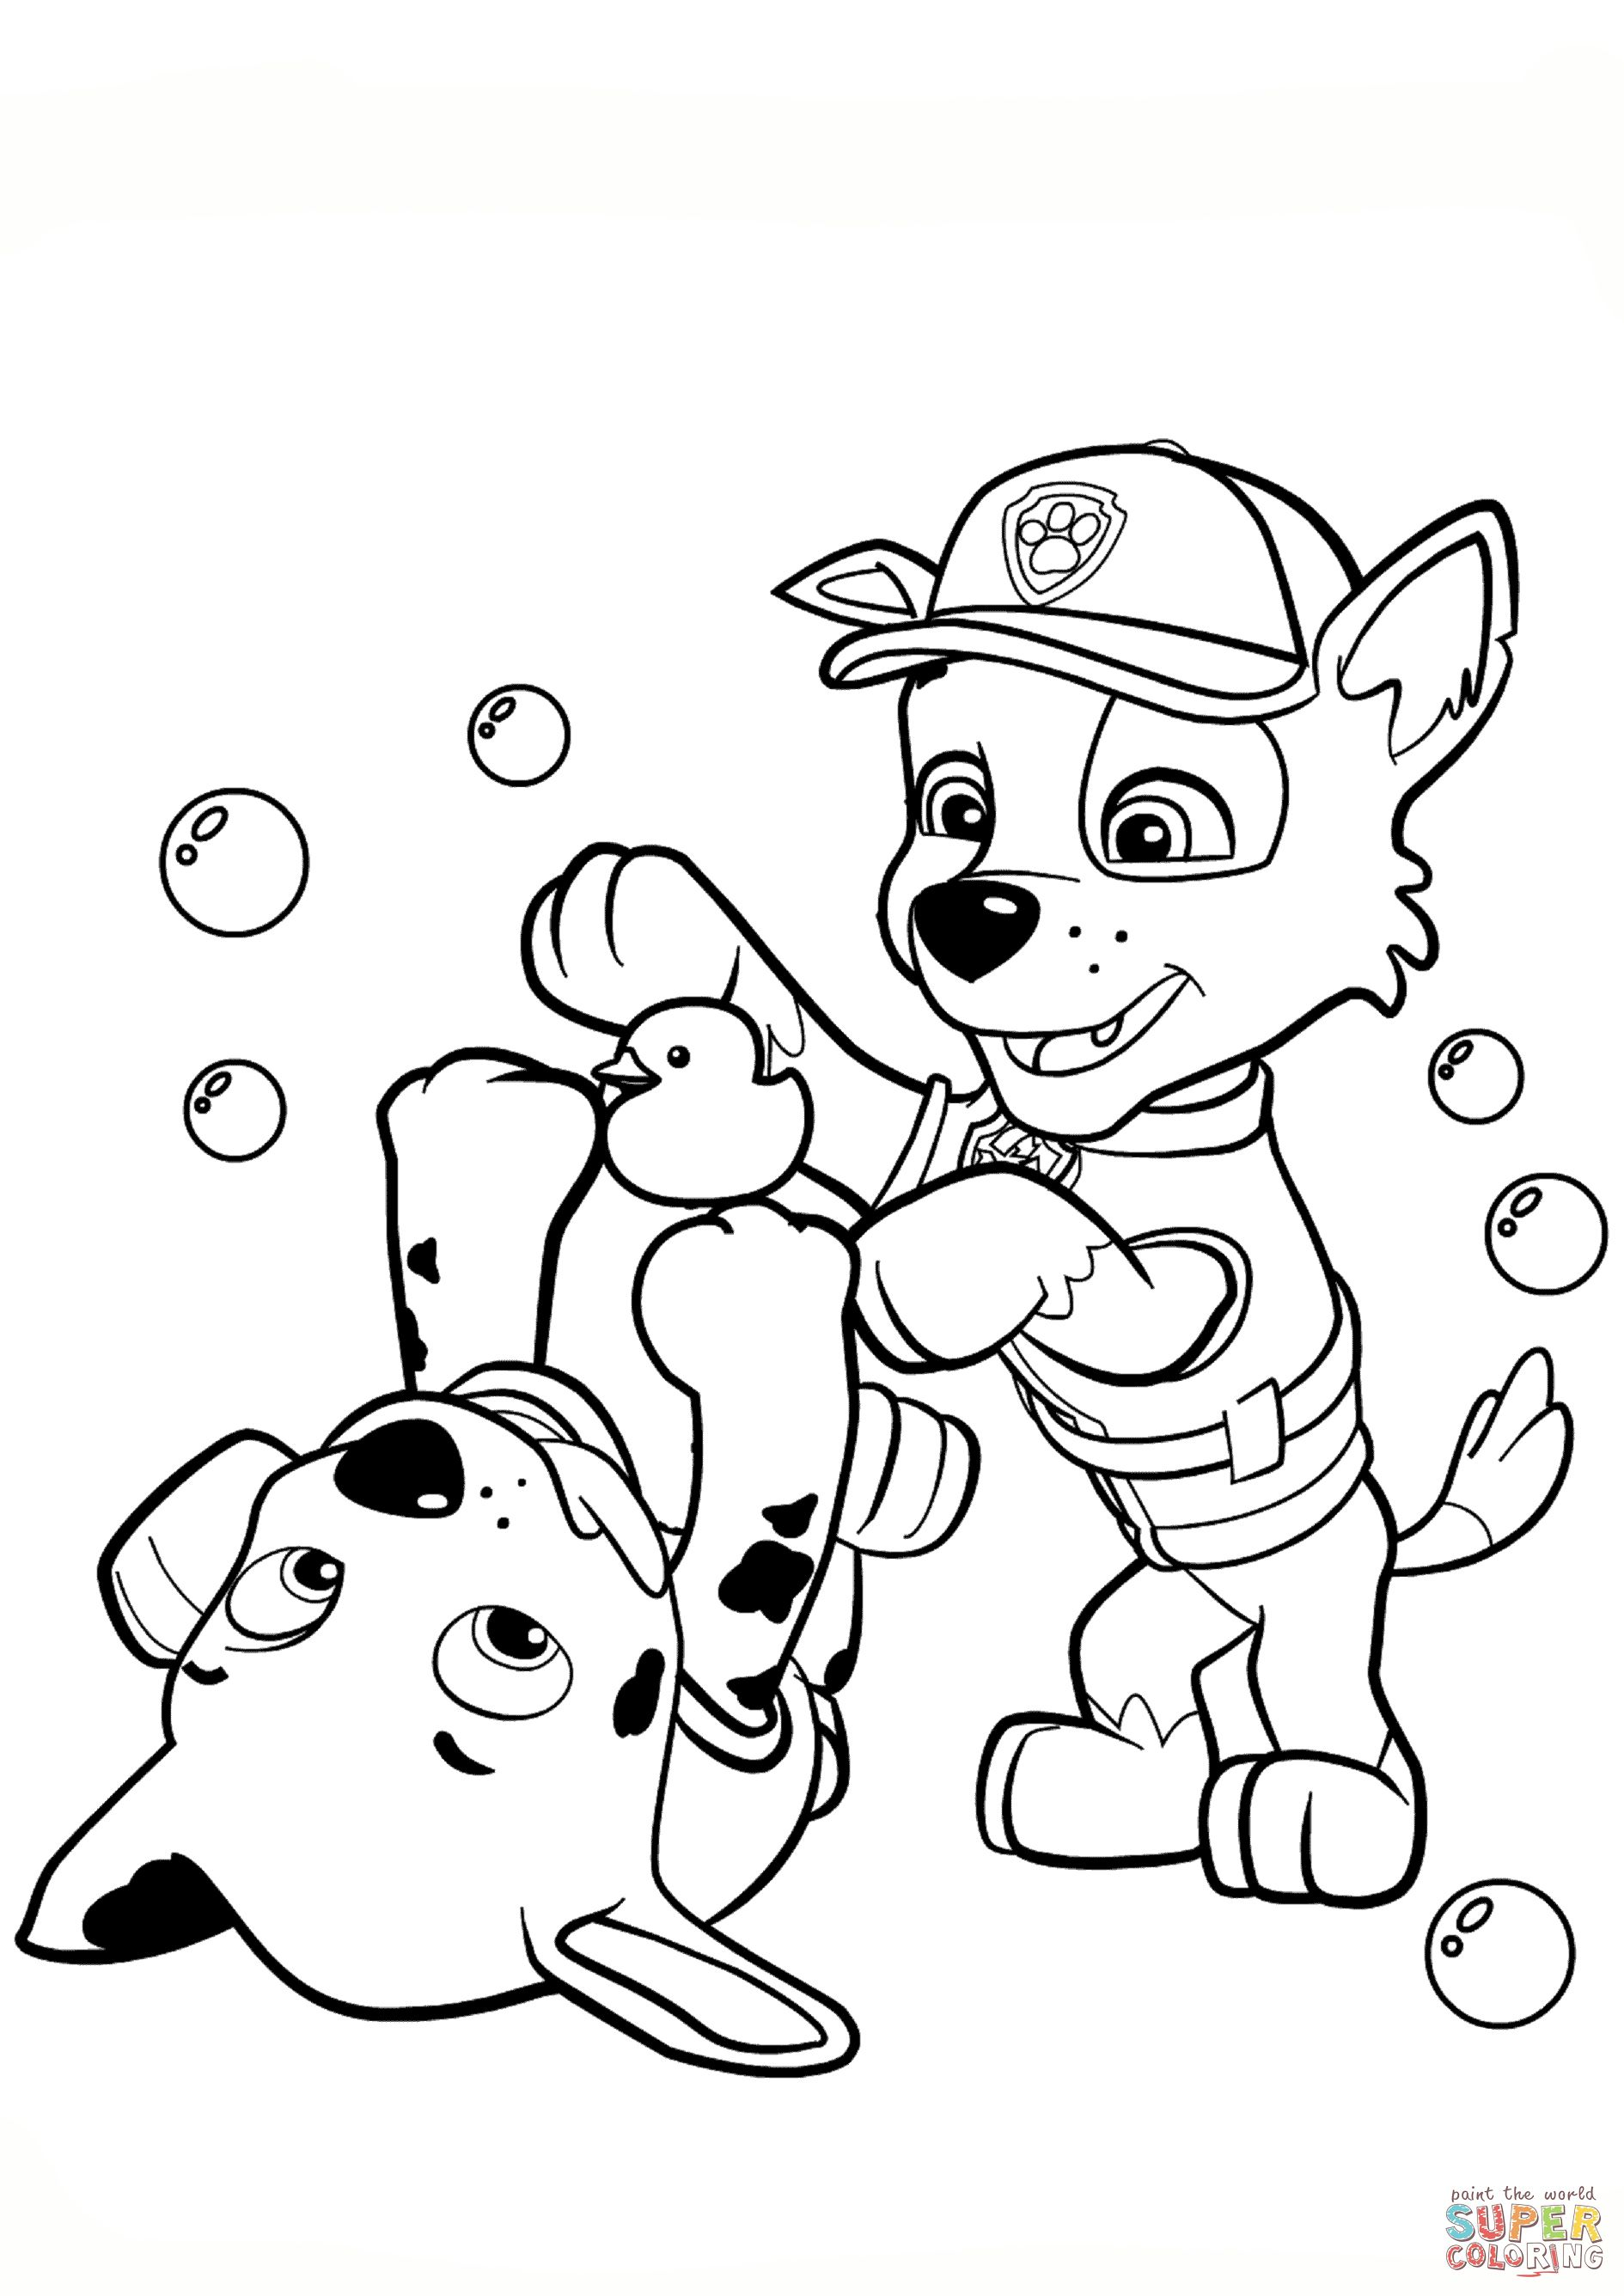 Paw Patrol Coloring Pages Paw Patrol Rocky And Marshall Coloring Page Free Printable Albanysinsanity Com Paw Patrol Coloring Paw Patrol Coloring Pages Paw Patrol Printables